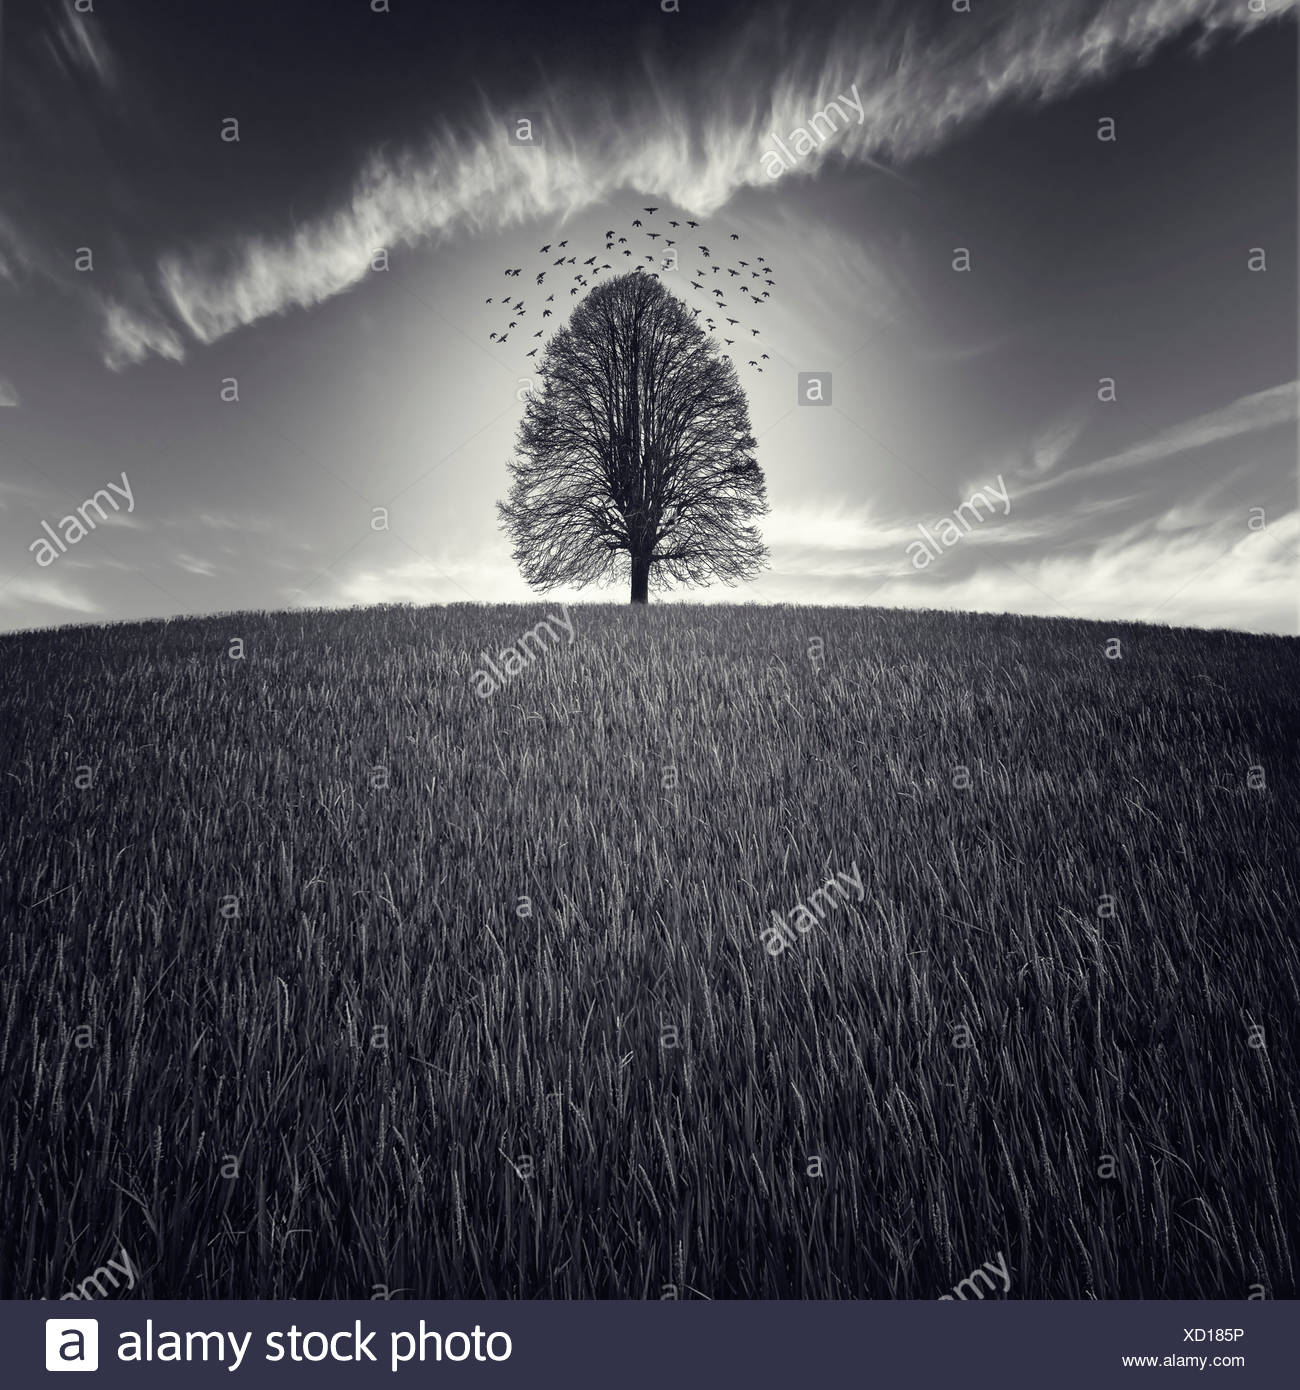 A single tree in a large field with birds flying in the sky - Stock Image